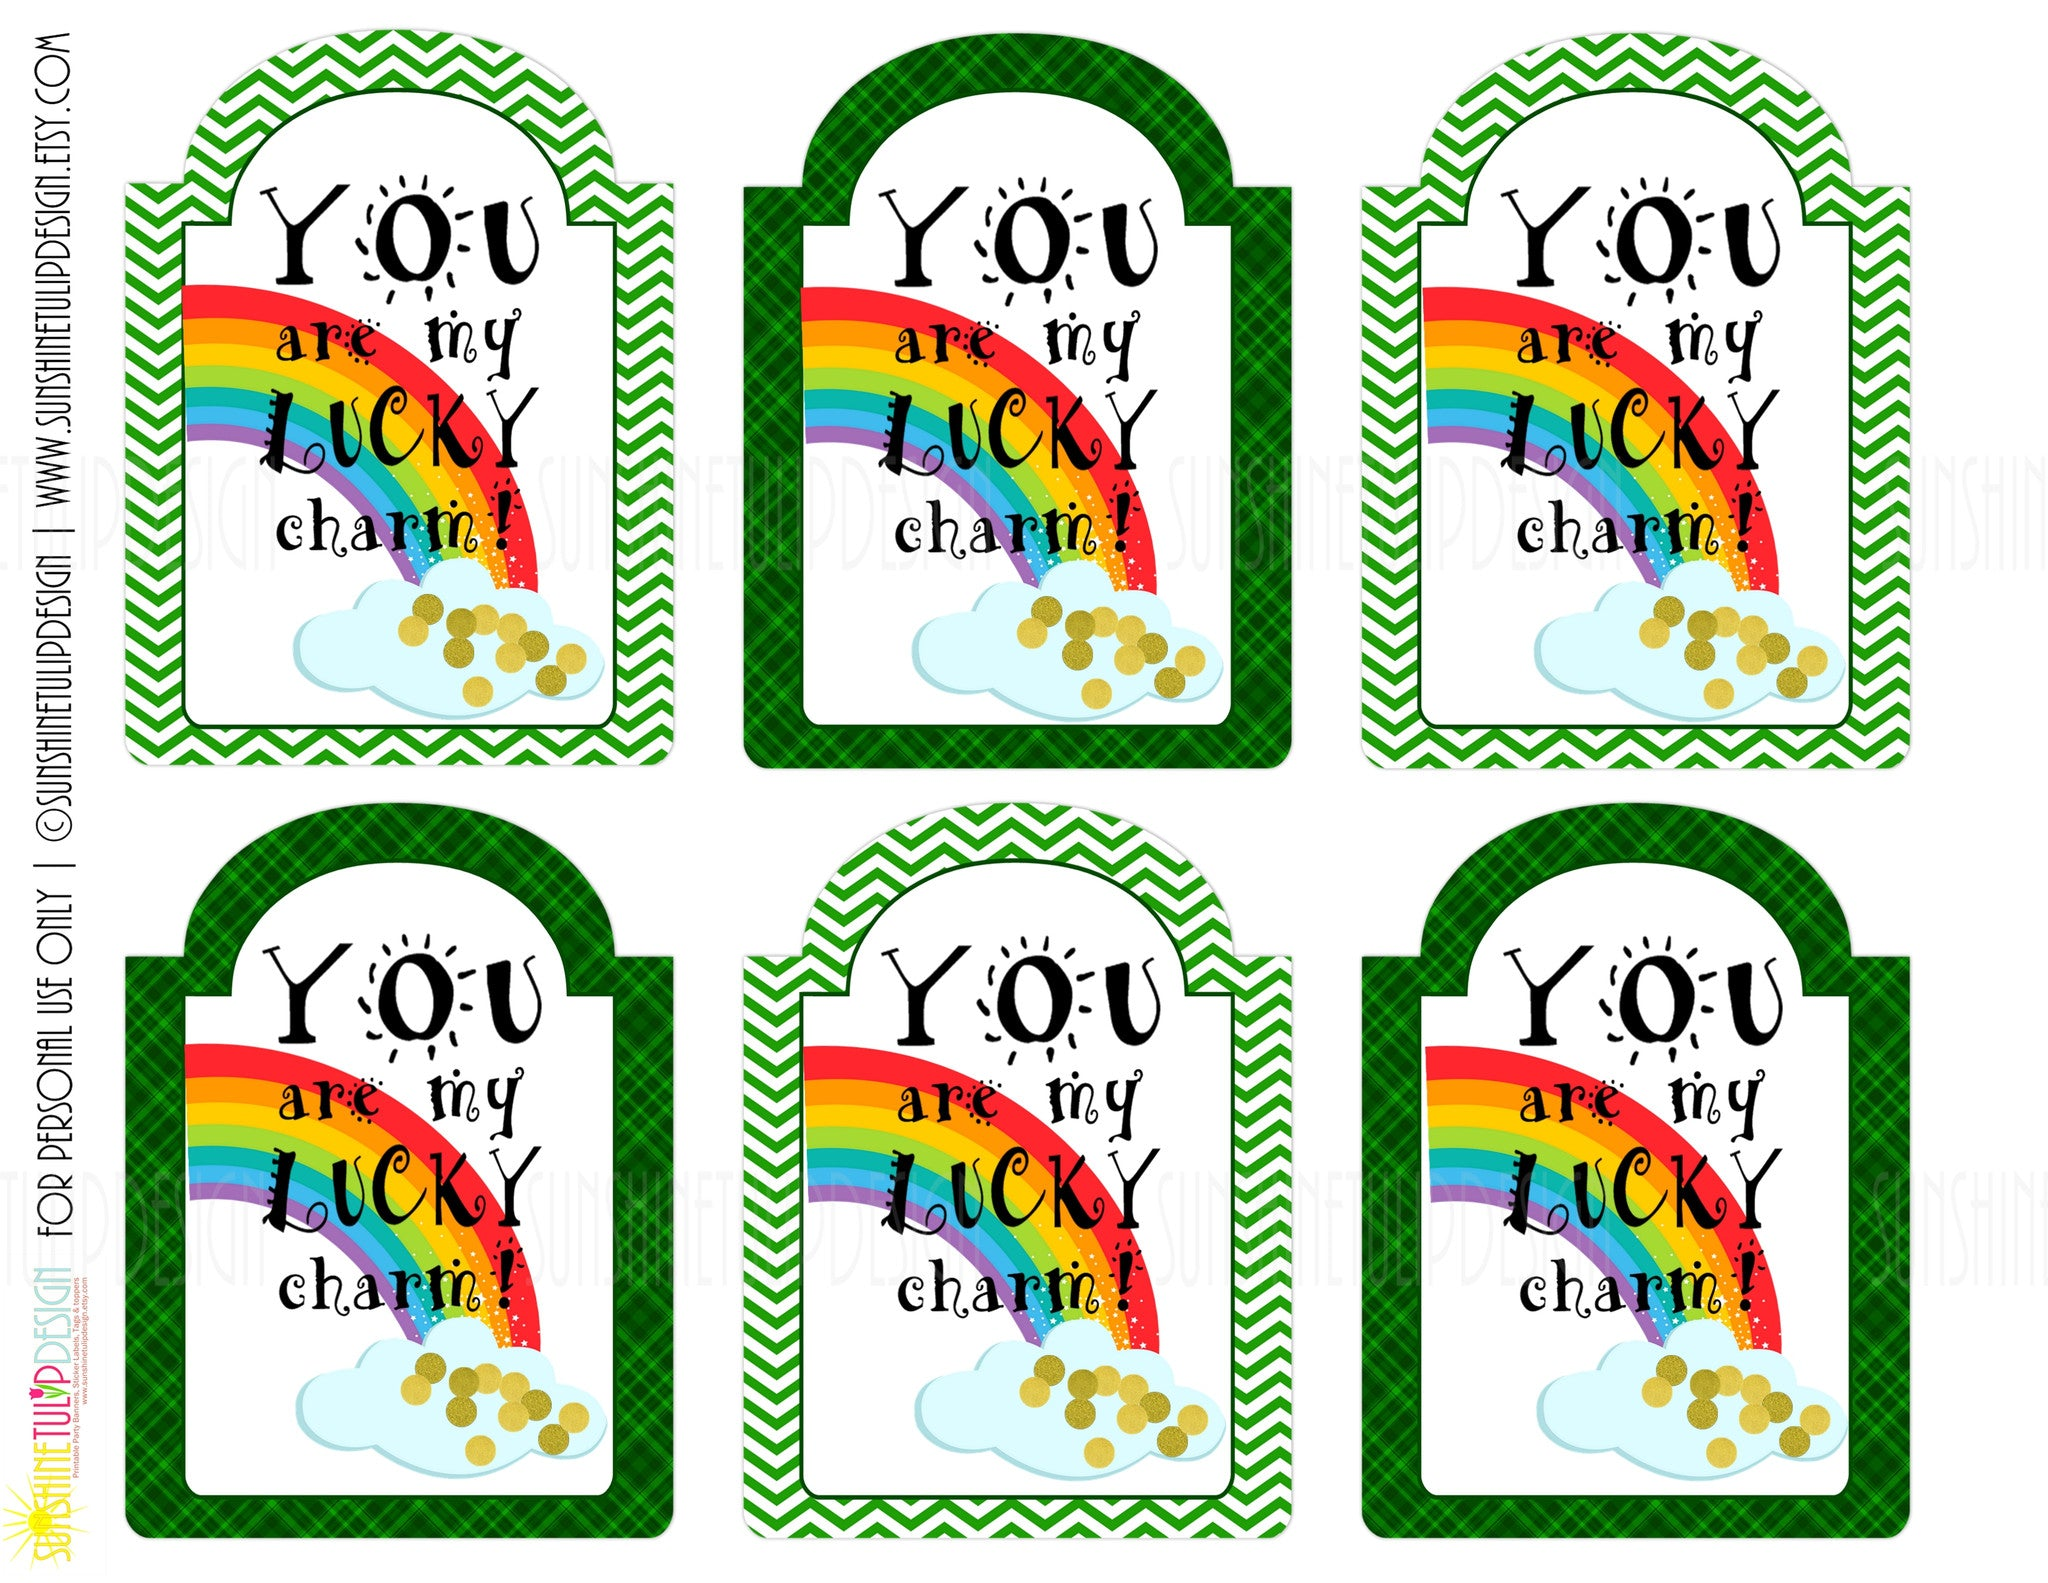 graphic regarding Teacher Appreciation Tags Printable referred to as Printable Fortuitous Attraction Present Tags, St Patricks Working day Present Tags, Trainer Appreciation Tags, Fortuitous Charms cereal take care of by means of SUNSHINETULIPDESIGN